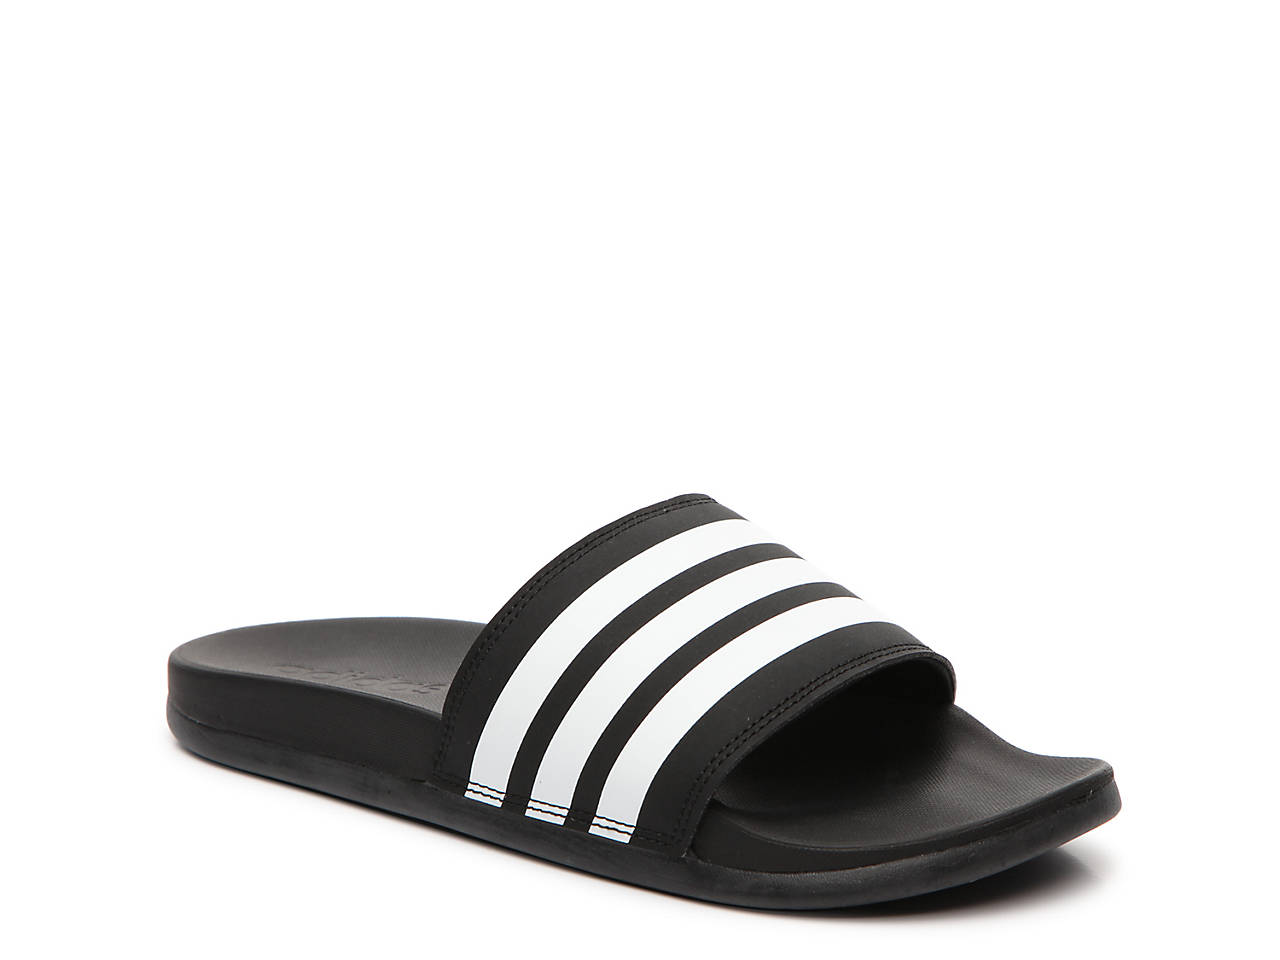 adidas Adilette Slide Sandal - Women s Women s Shoes  1f222d4db